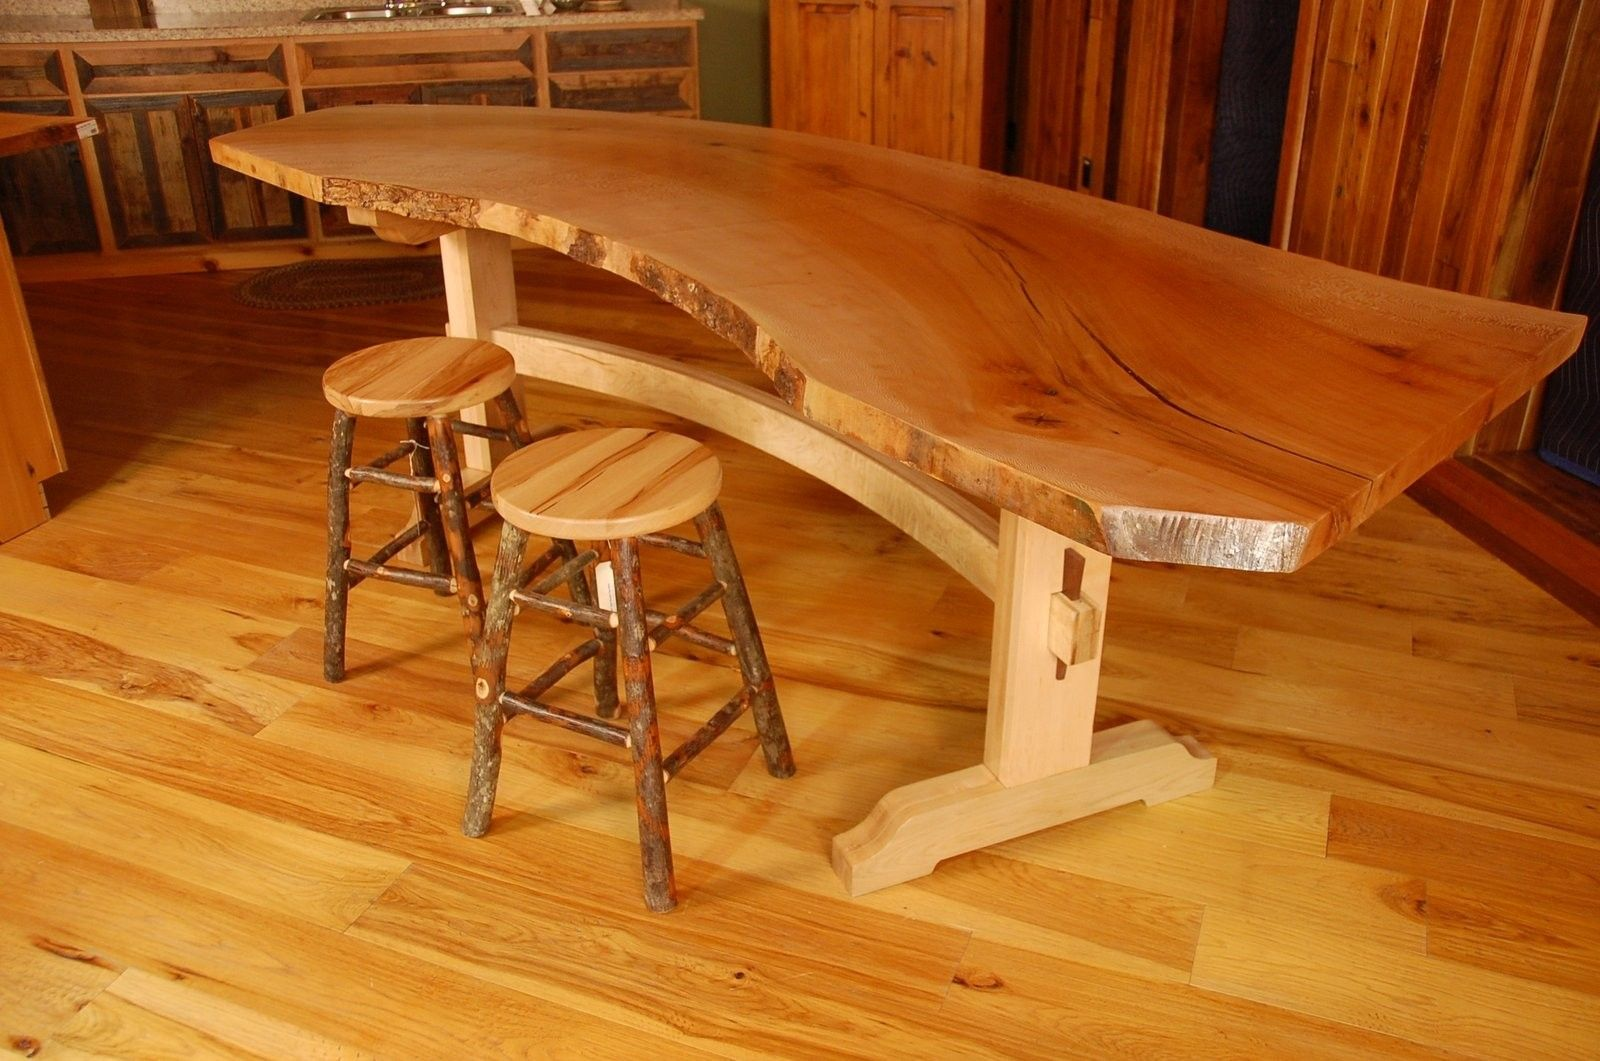 Handmade sycamore live edge slab dining table by corey for Live edge slab lumber